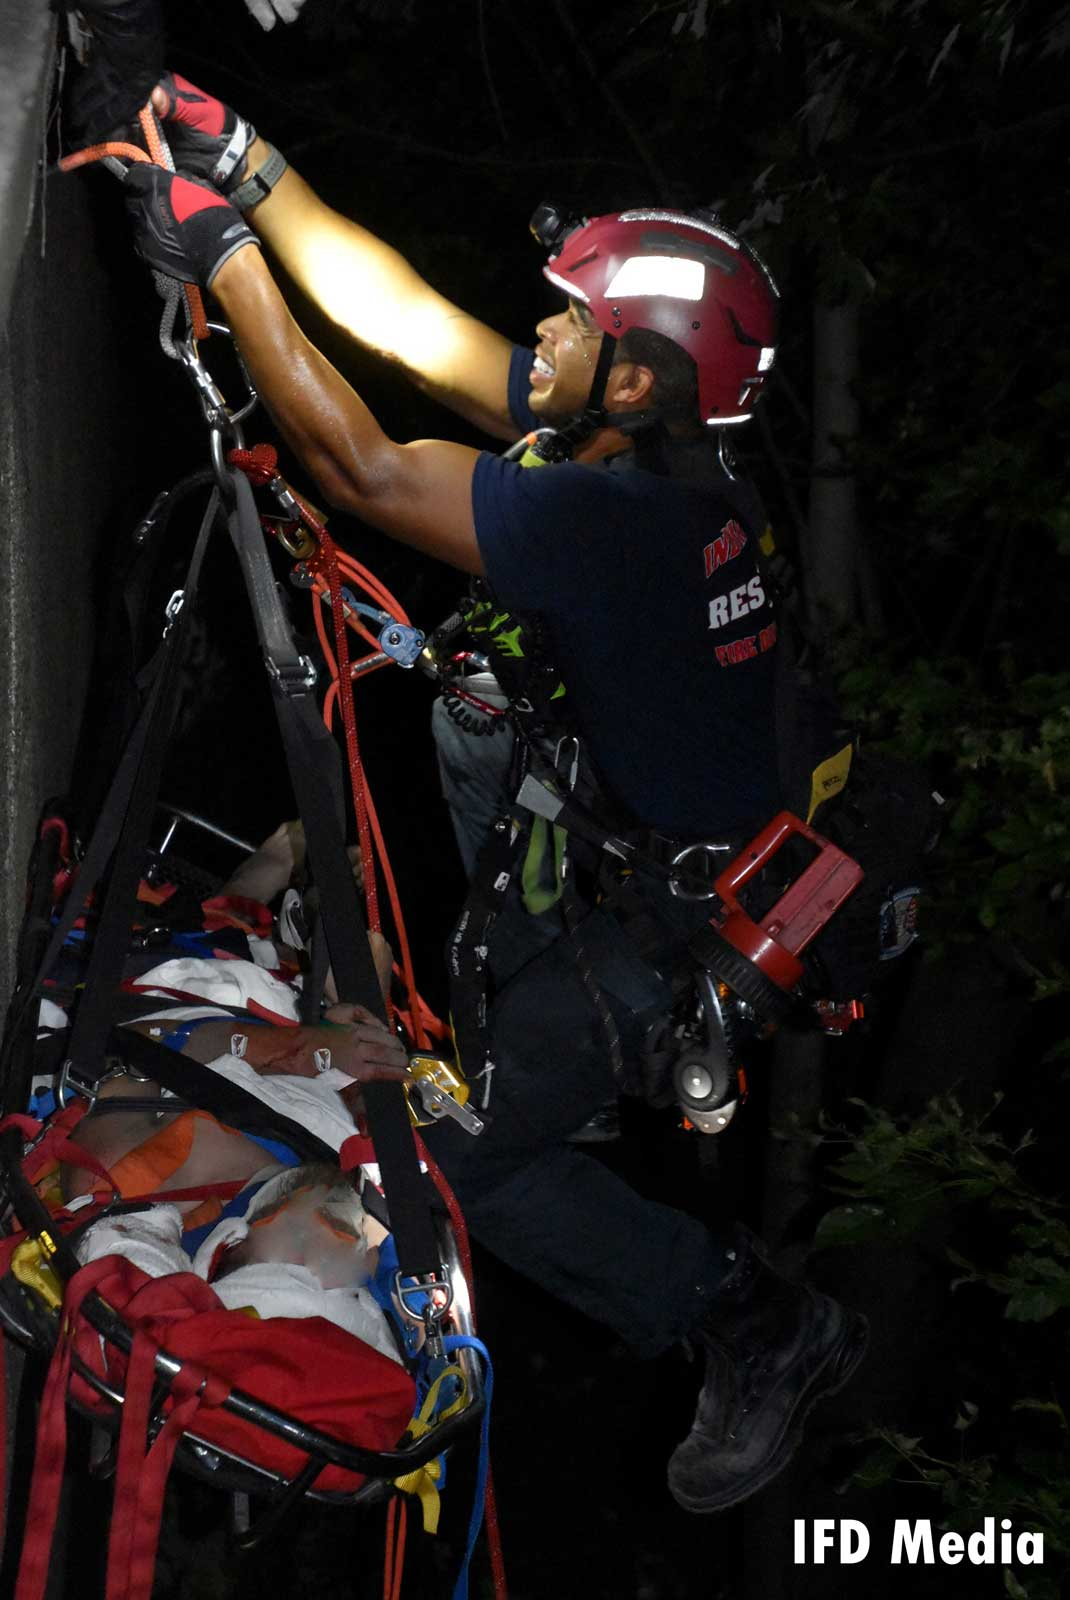 An Indianapolis firefighter and rope rescue system